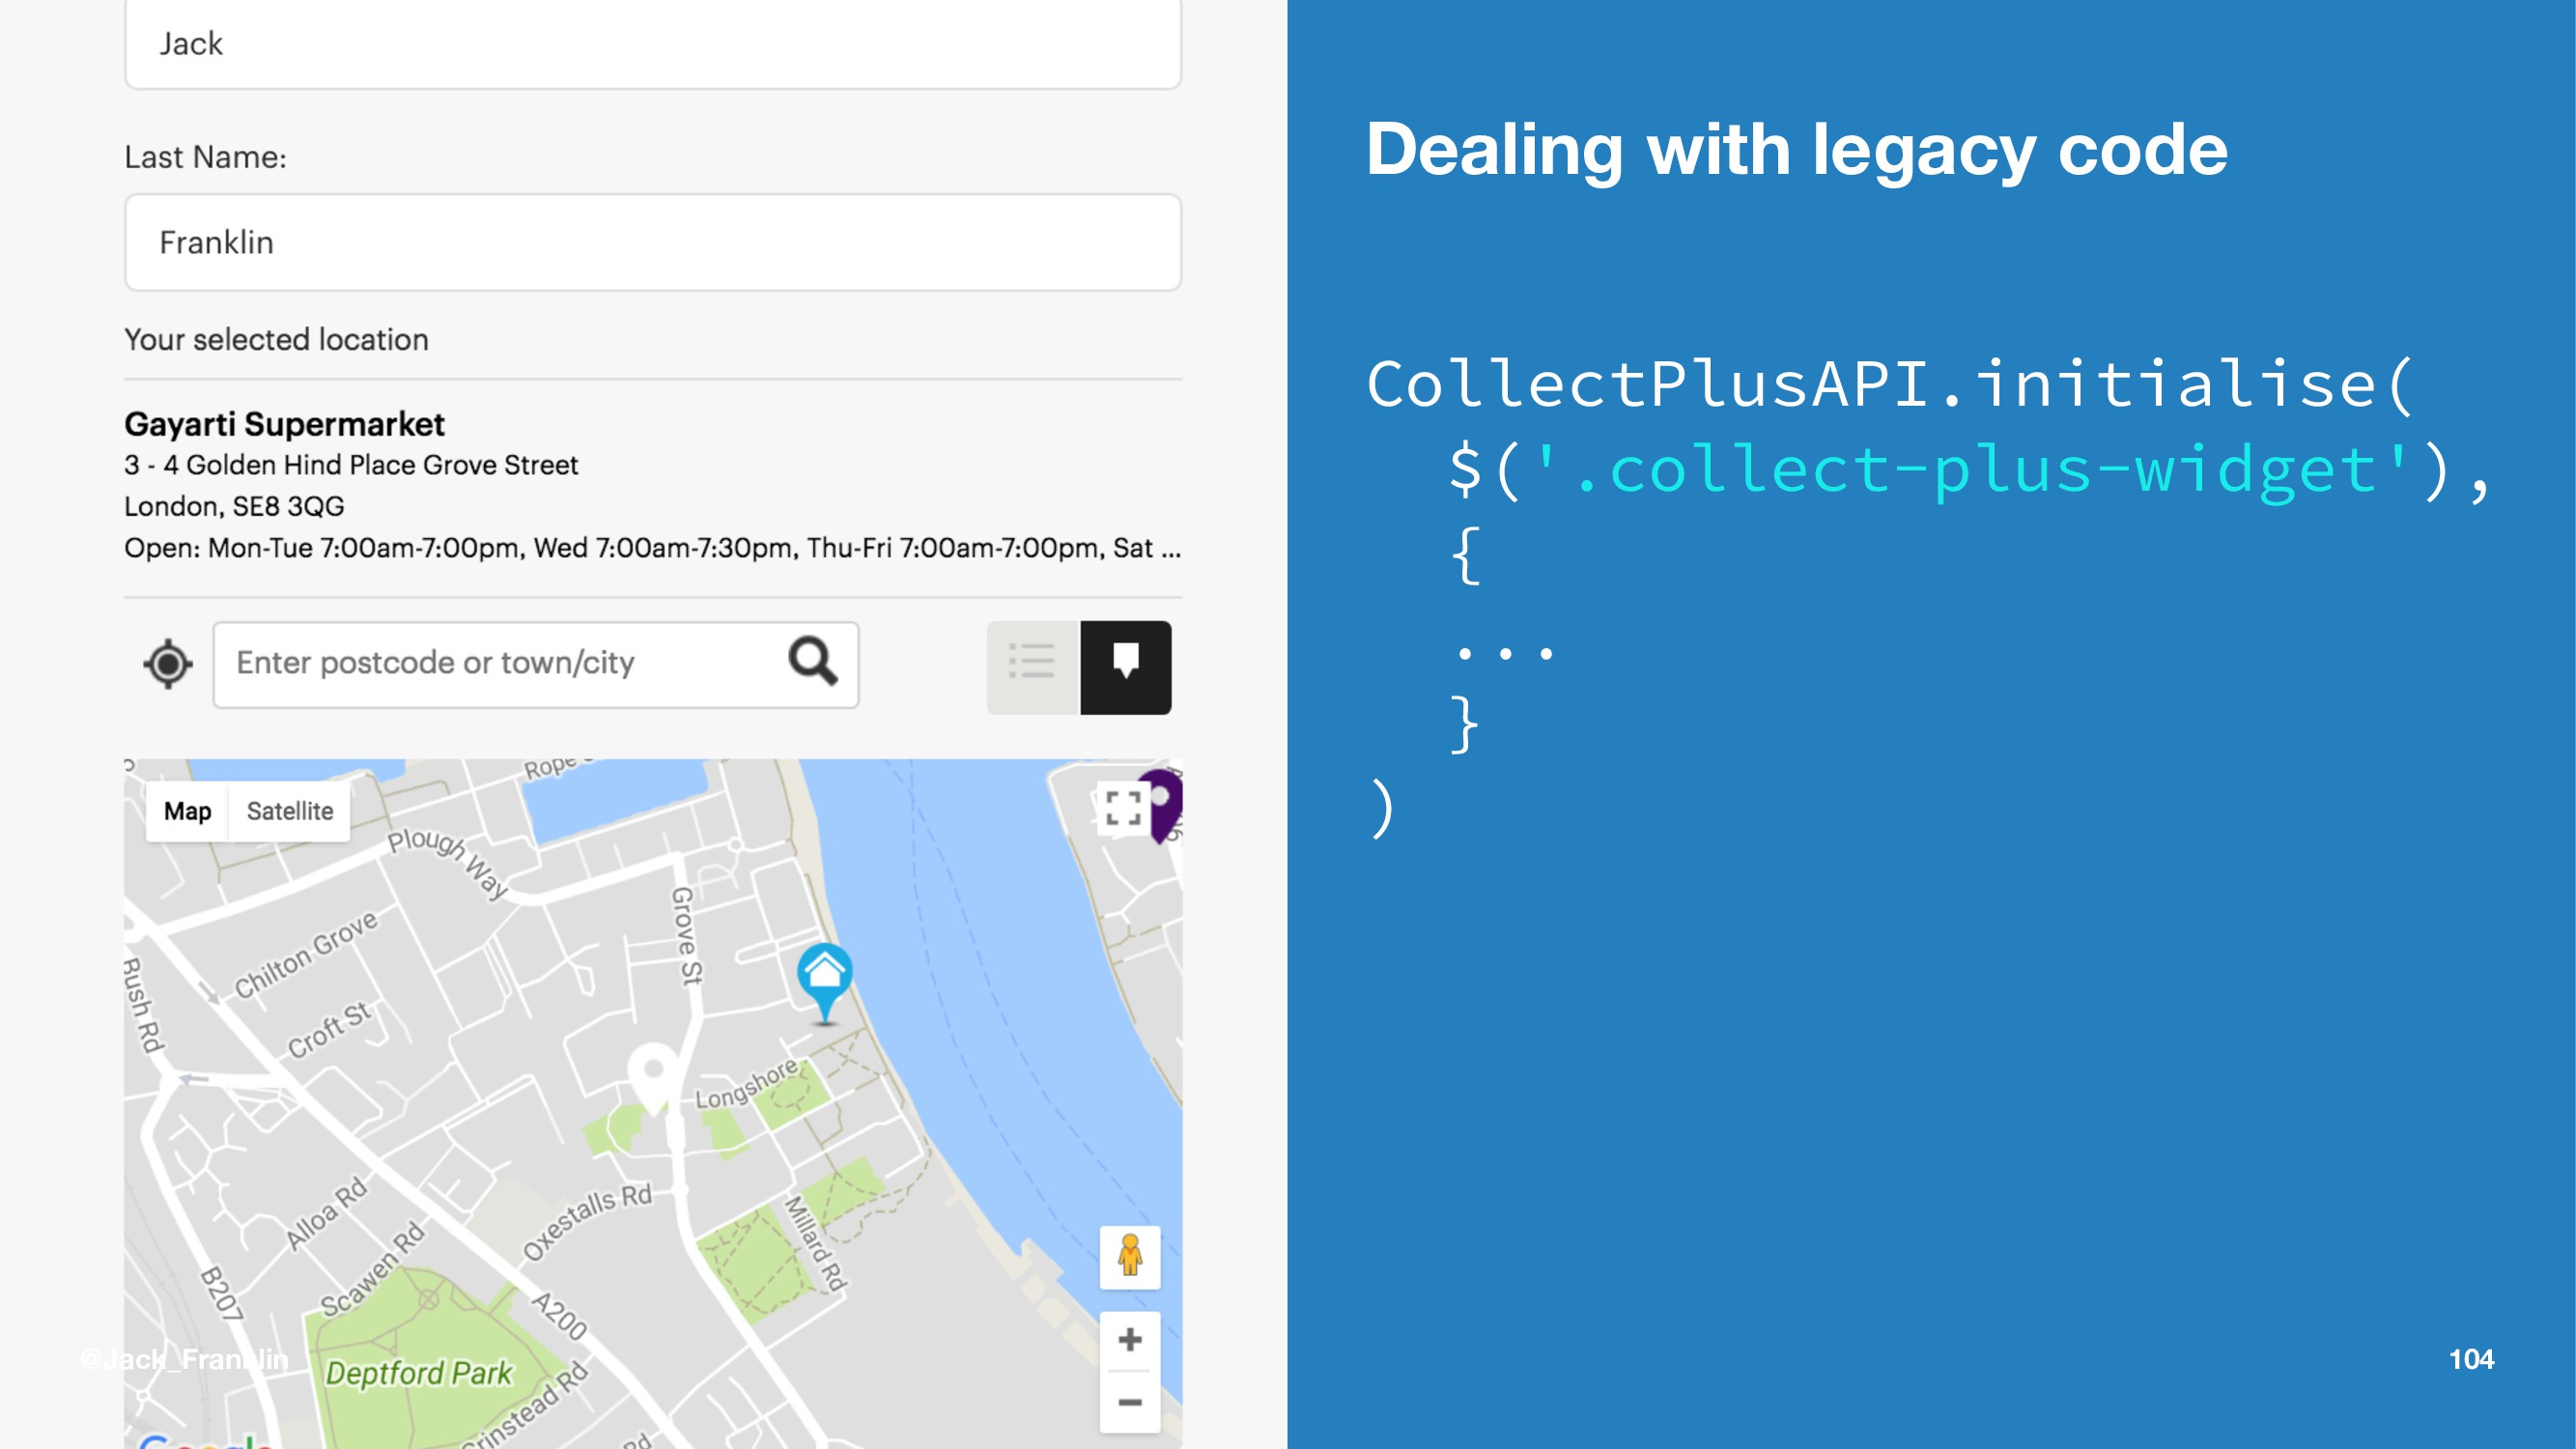 Dealing with legacy code CollectPlusAPI.initial...